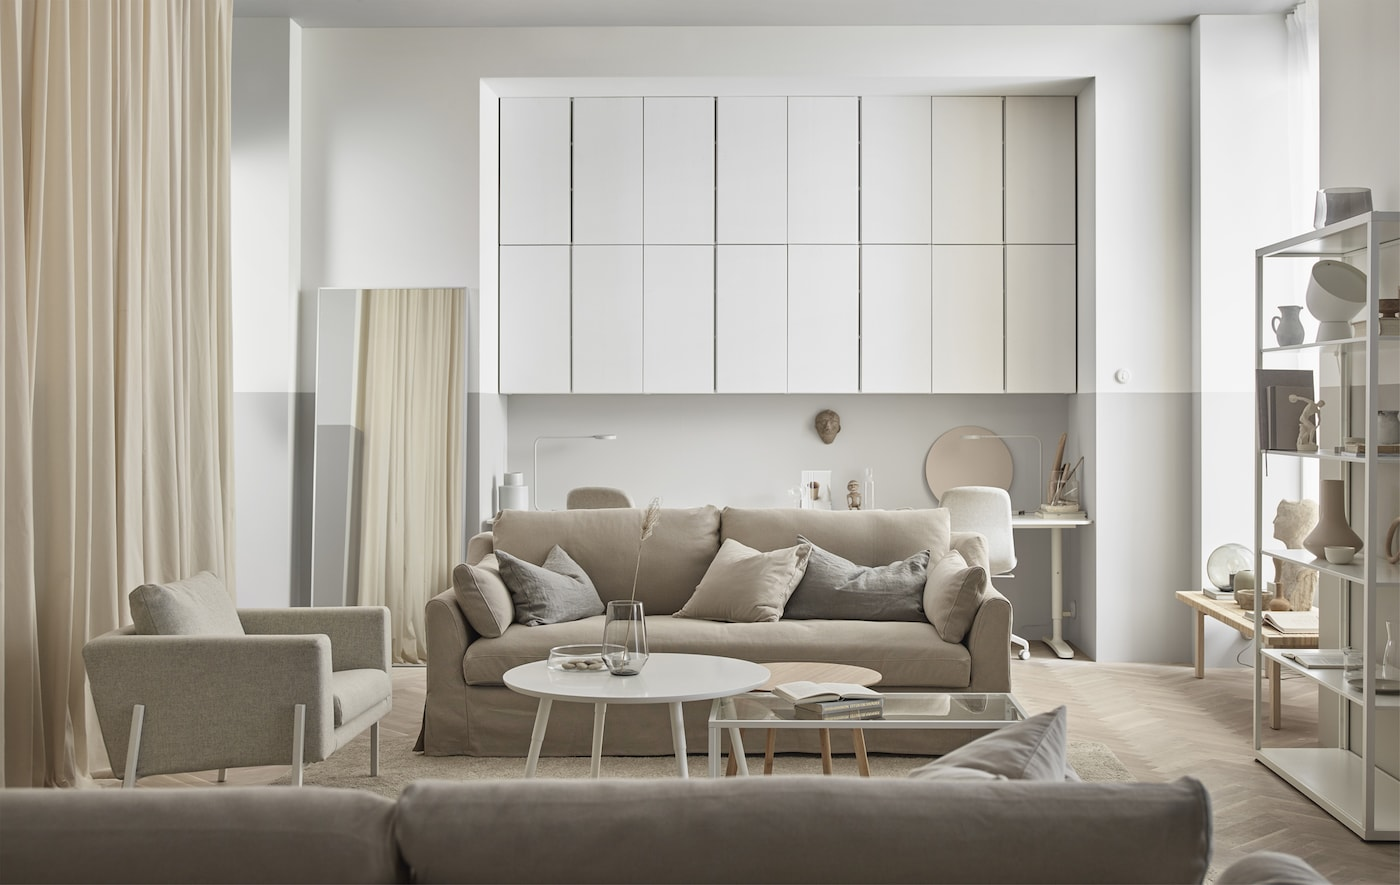 Woods, creamy white, and glass create a relaxing and organic feeling living room.